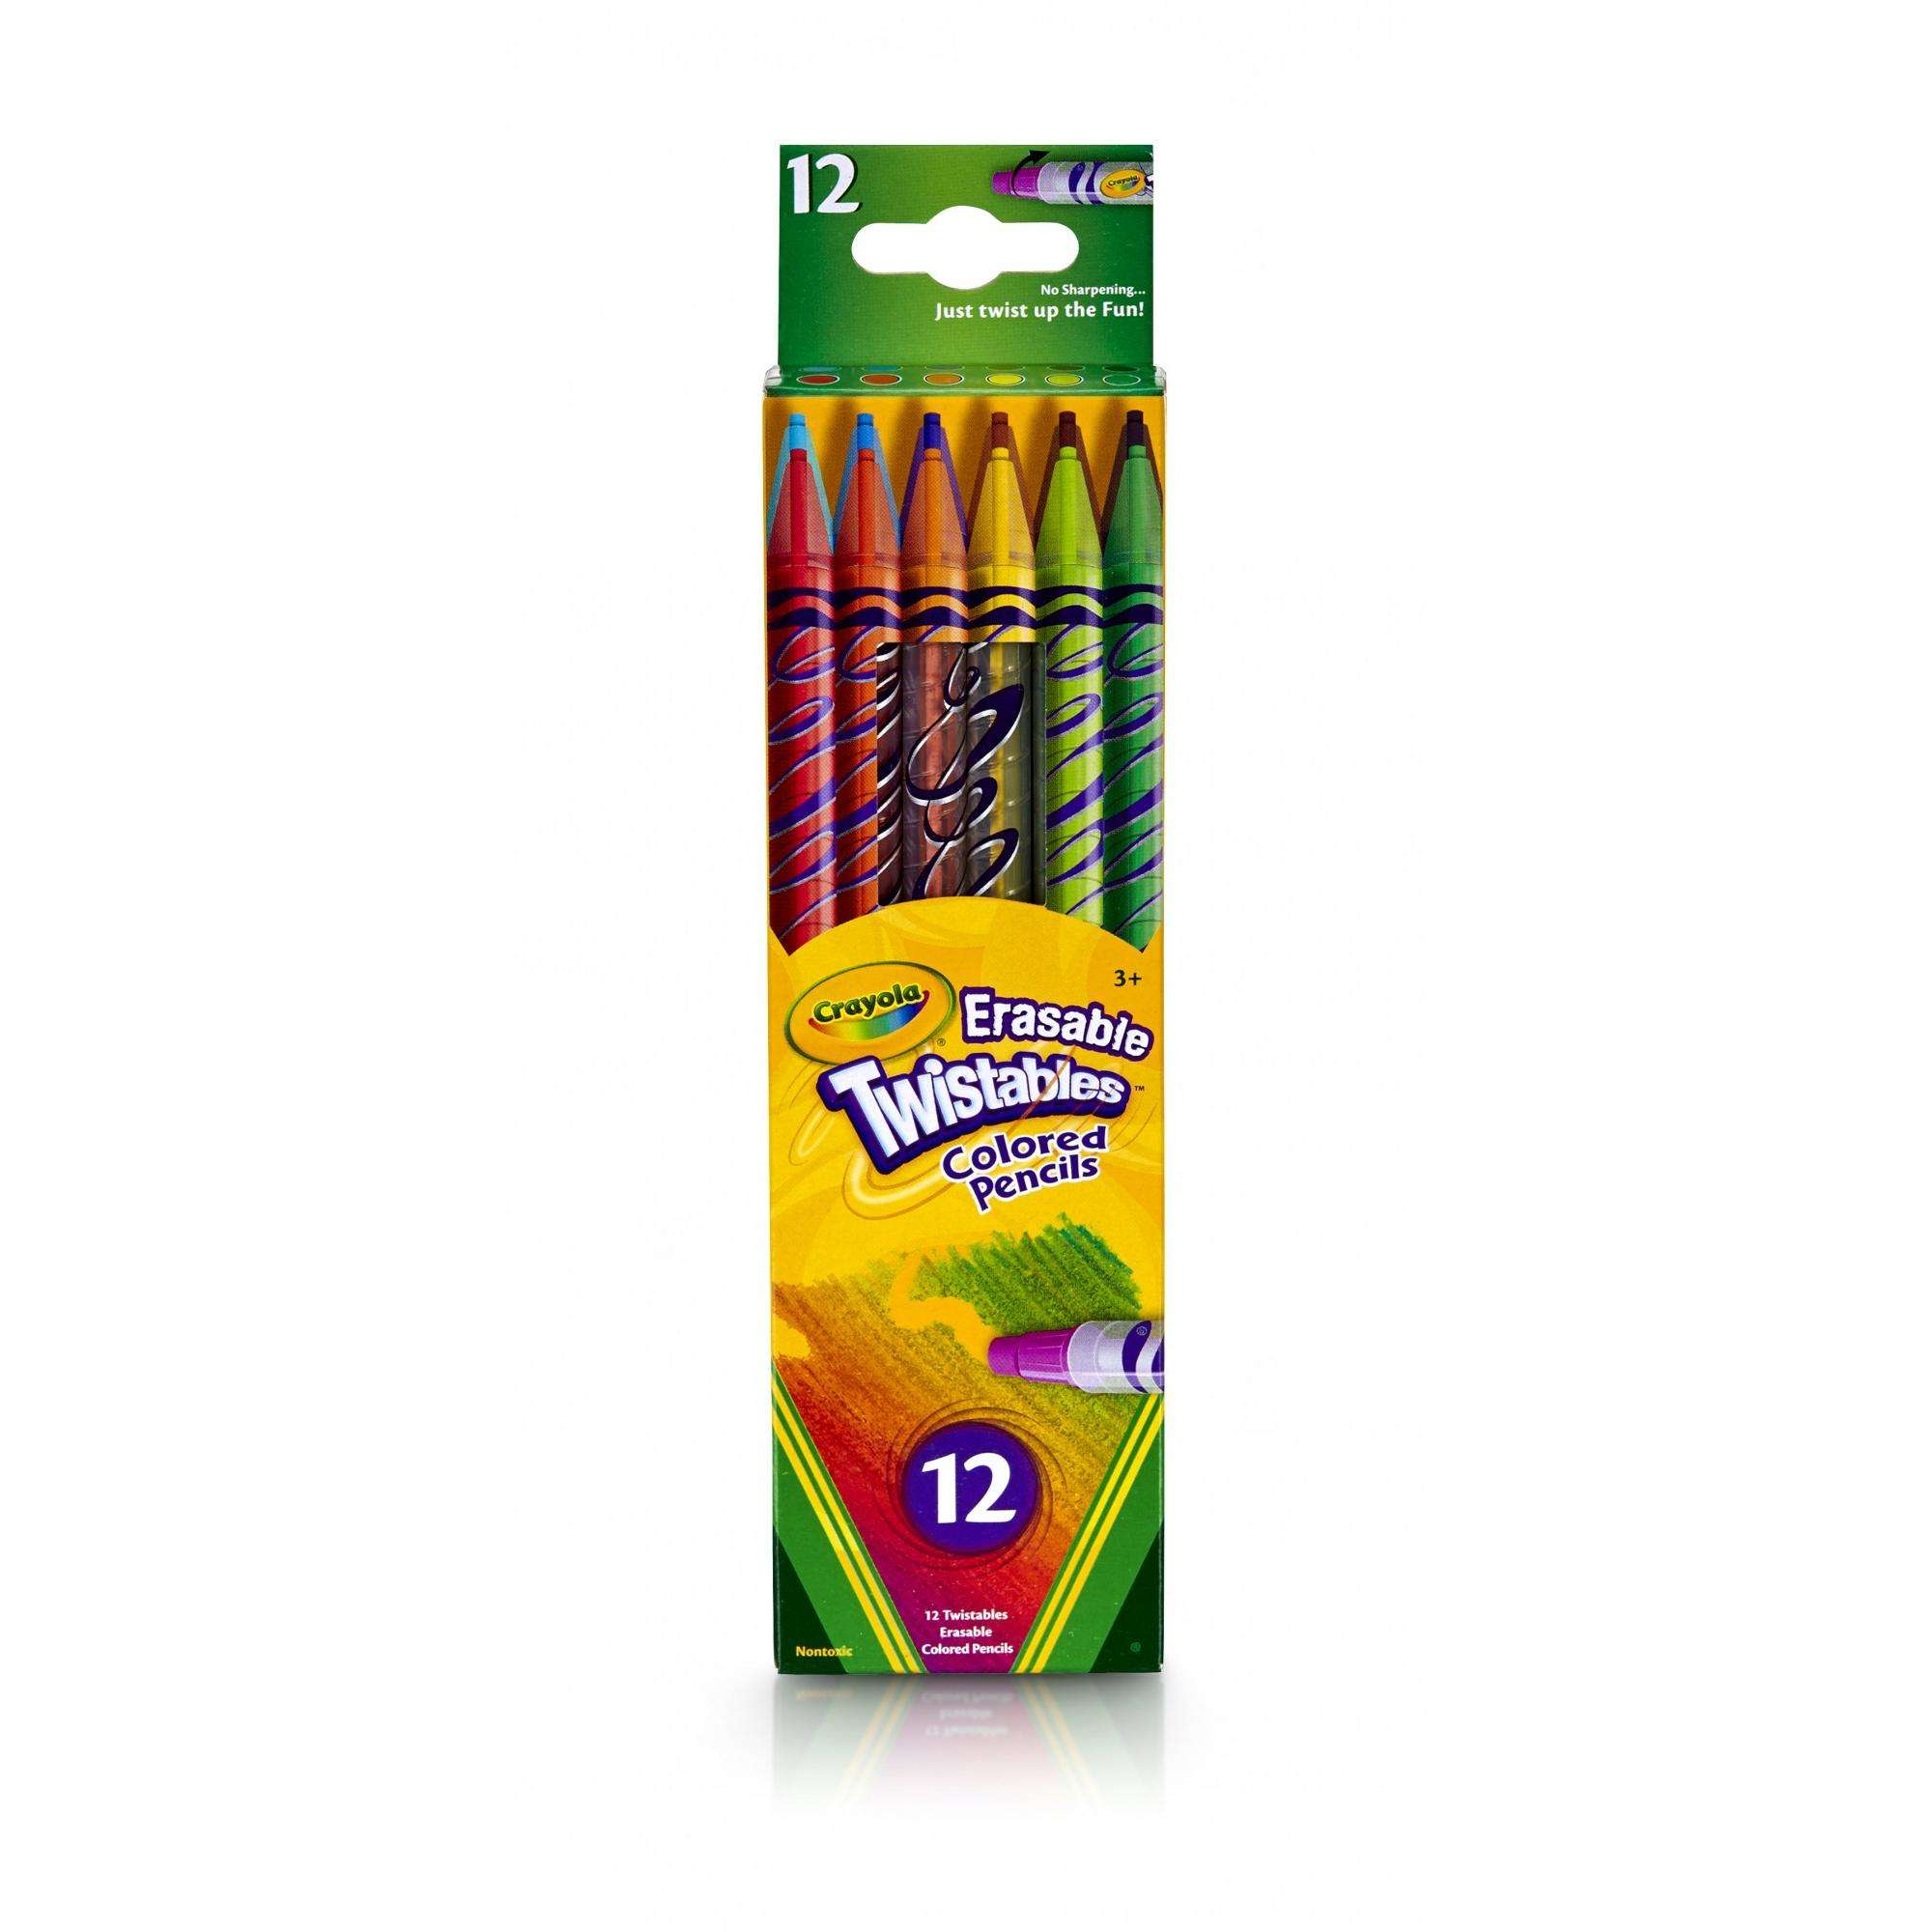 Crayola Eraseable Twistables Colored Pencils, 12 Count